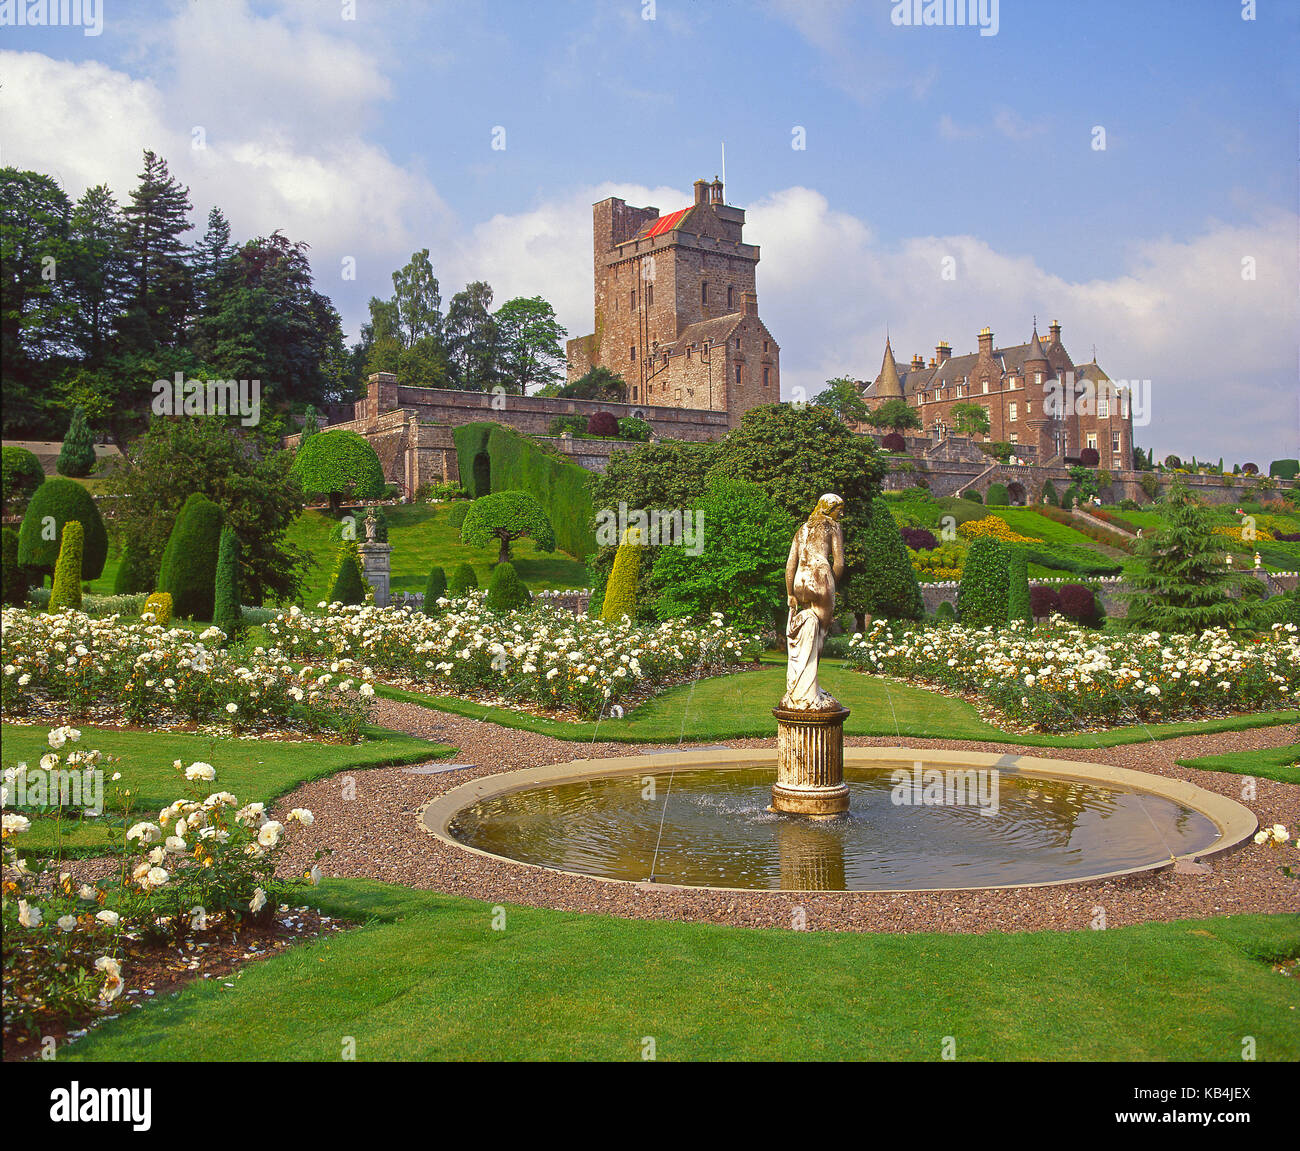 Beautiful Landscaped Gardens At Drummond Castle, Near Crieff, Perthshire